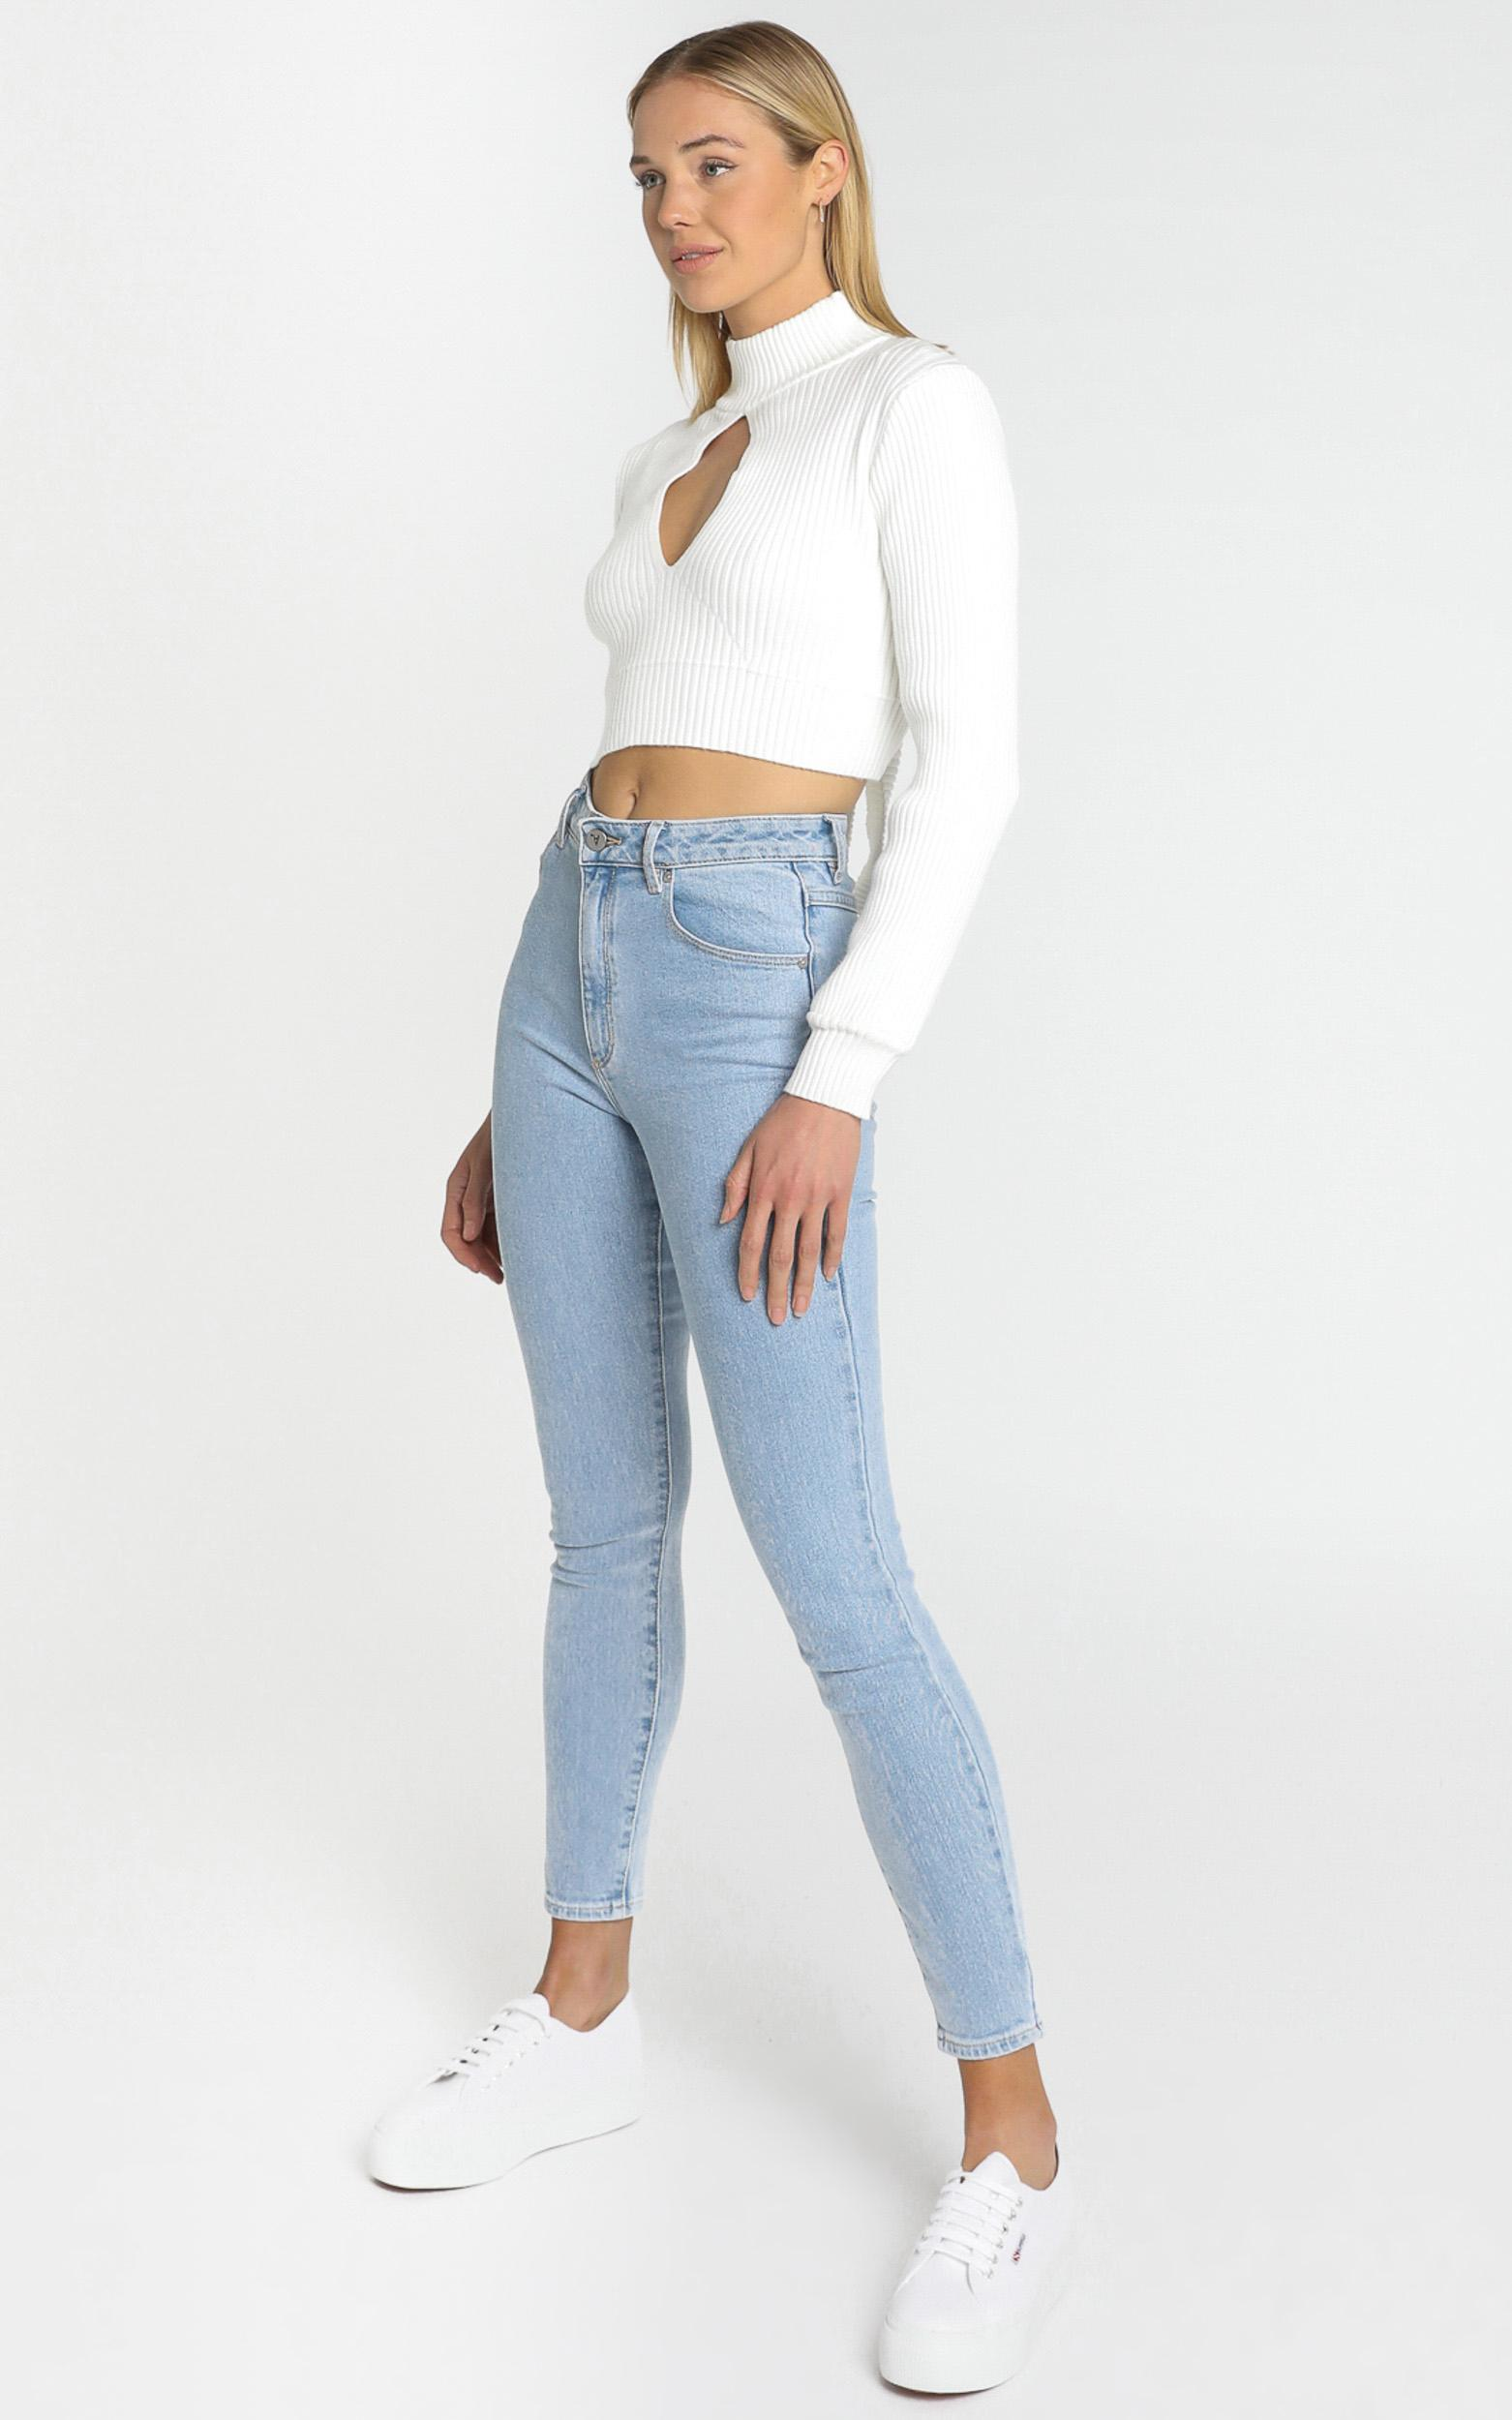 Alika Knit Top in White - 8 (S), White, hi-res image number null